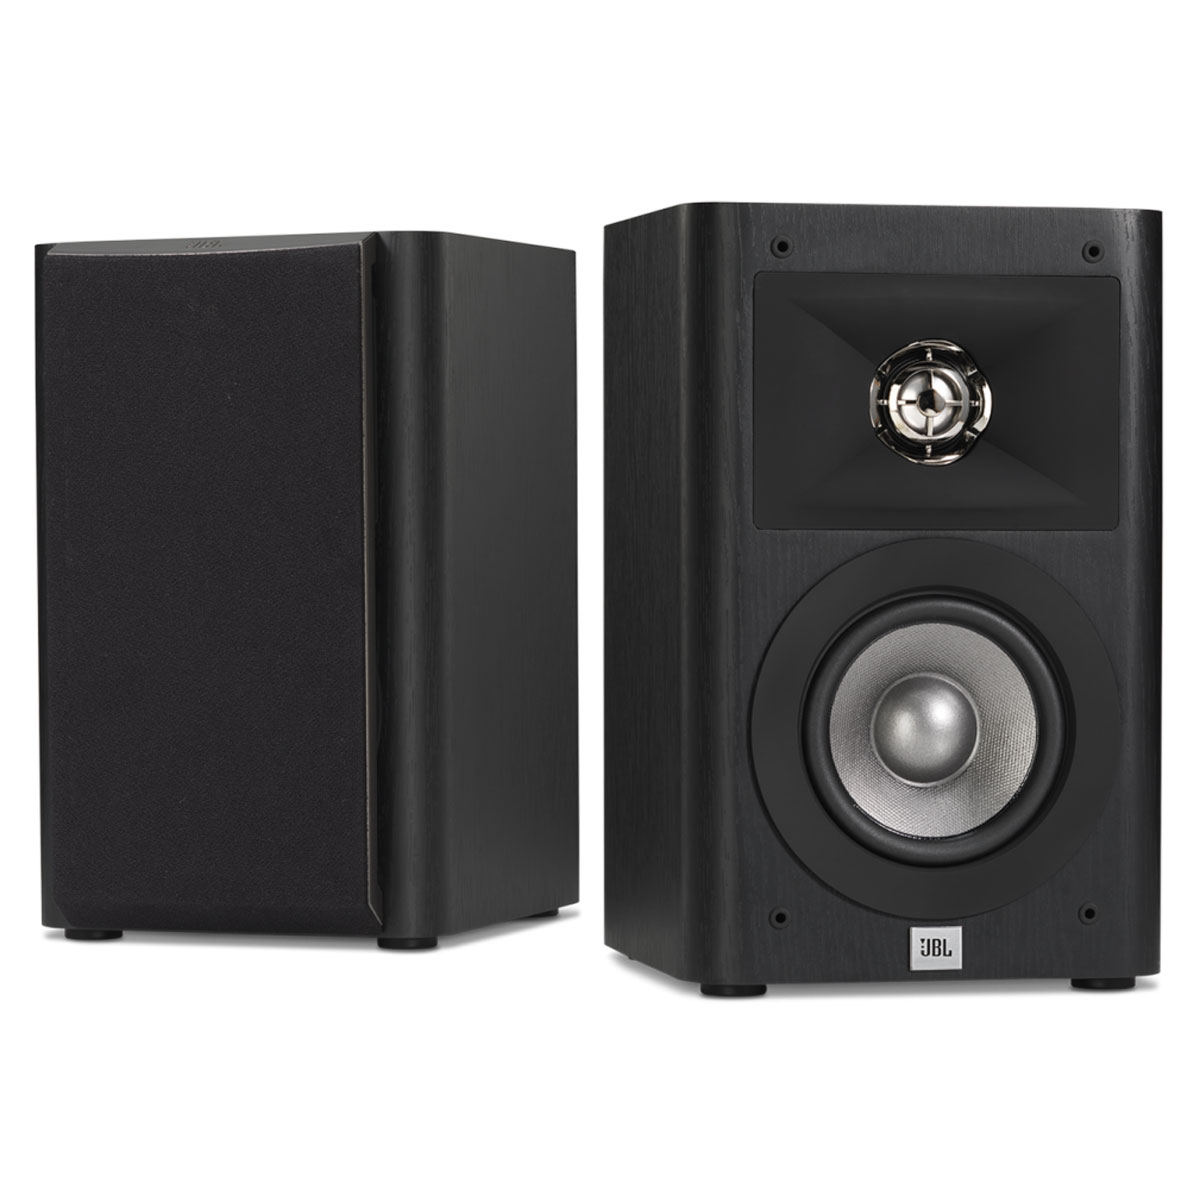 jbl studio 220 noir enceintes hifi jbl sur. Black Bedroom Furniture Sets. Home Design Ideas